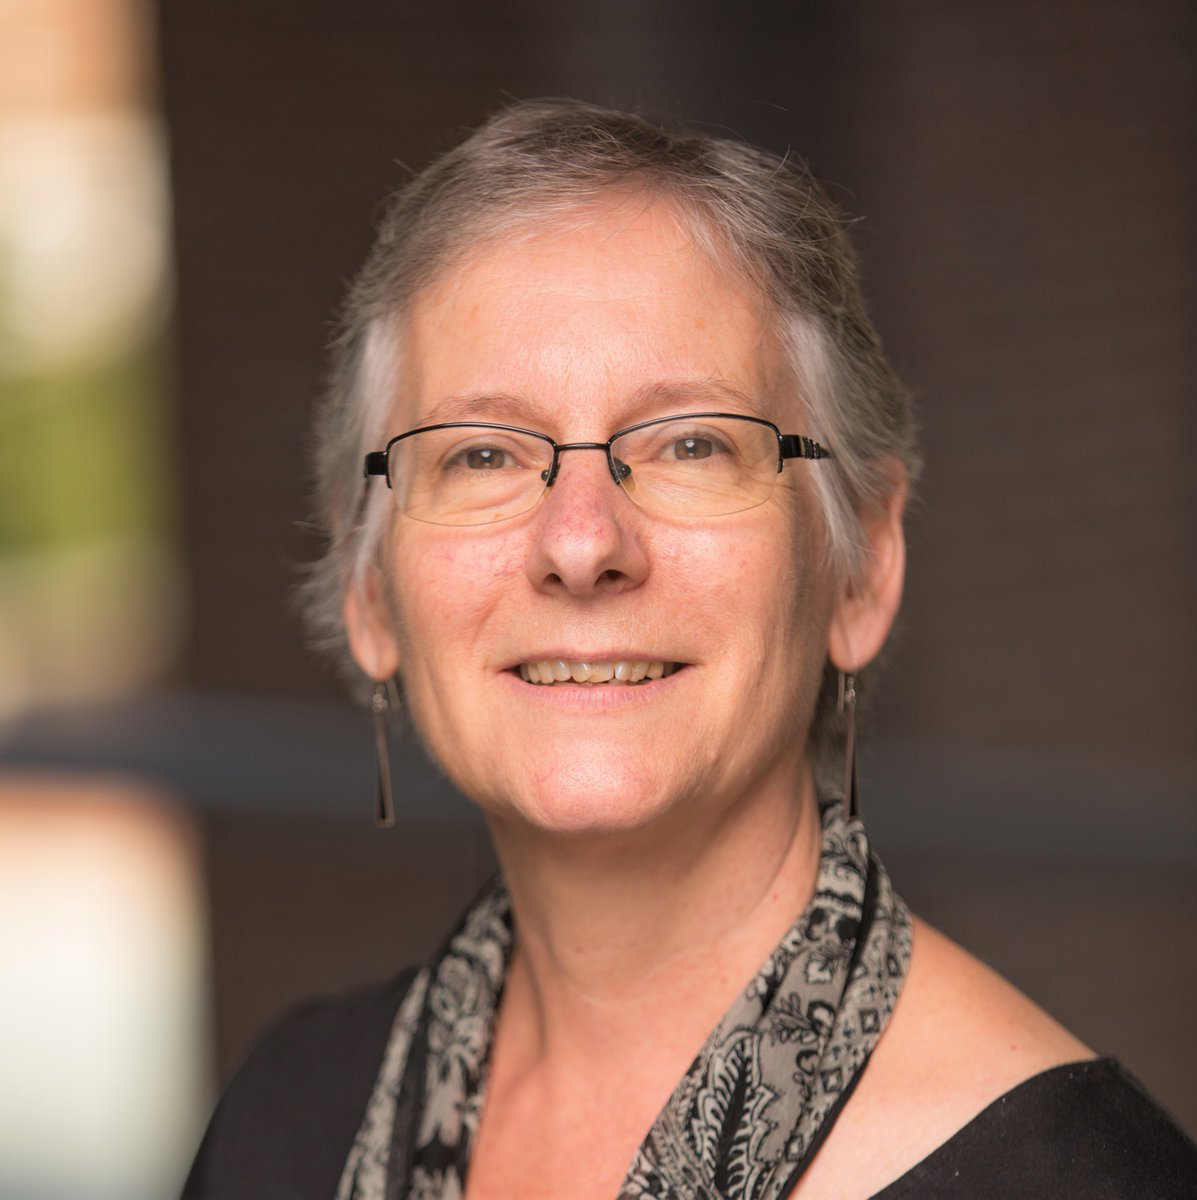 Since 2012, #CPCRN principal investigator @JenniferLeeman1 of @UNCSON has been instrumental in paving the way for successful implementation and scale-up of evidence-based interventions to reduce the burden of cancer. Learn more about #implementationscience from Dr. Leeman here👇 https://t.co/pnTVhr8Xf8